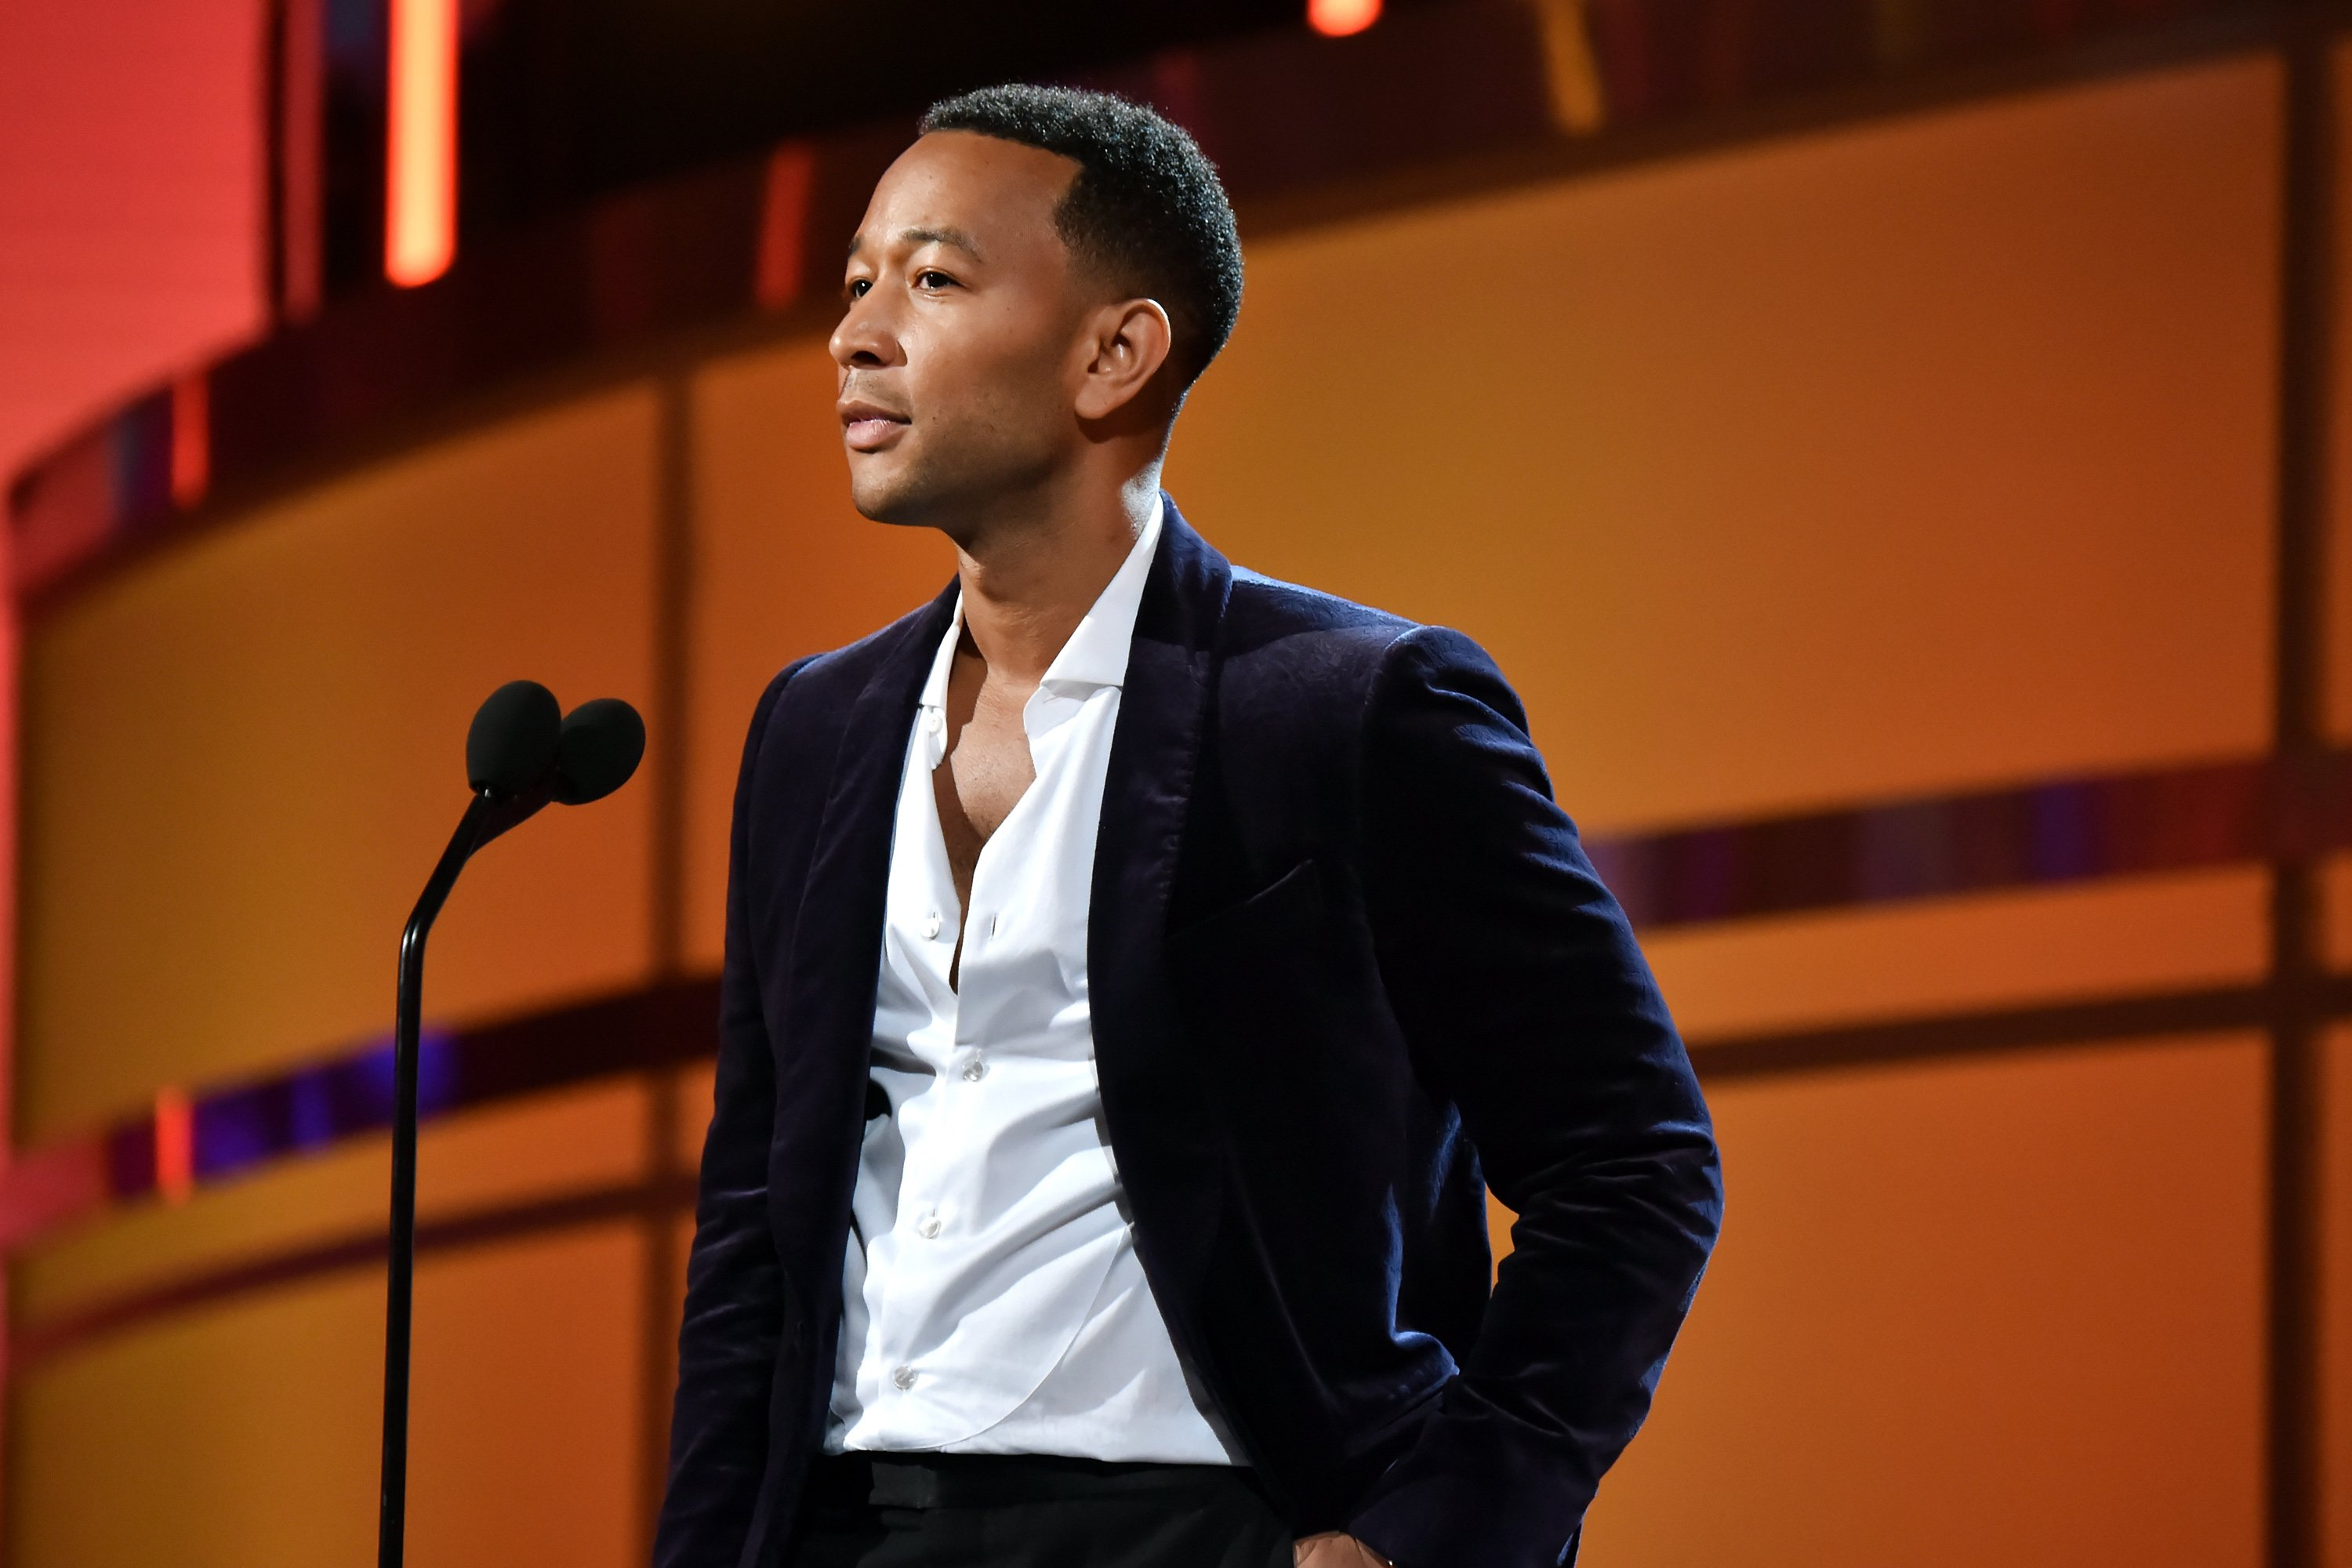 John Legend onstage at the 2018 BET Awards in Los Angeles, California on June 24, 2018 | Photo: Getty Images